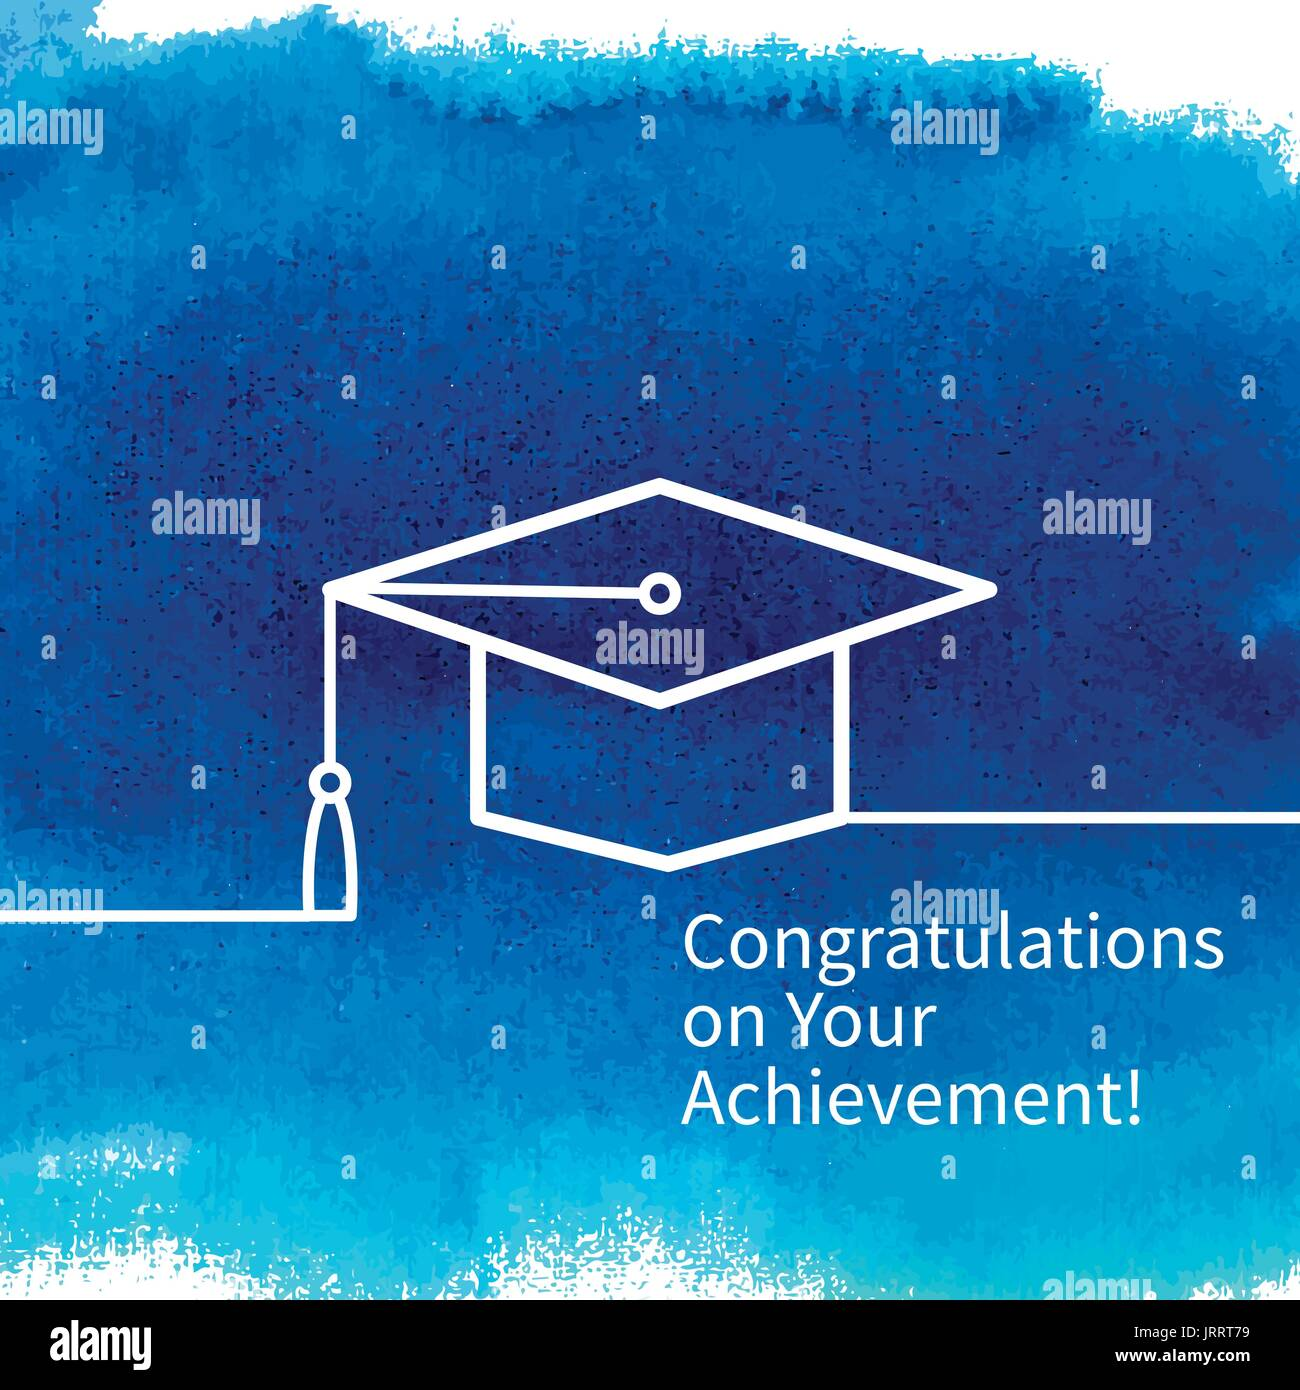 Congratulation Graduate Card Stockfotos & Congratulation Graduate ...